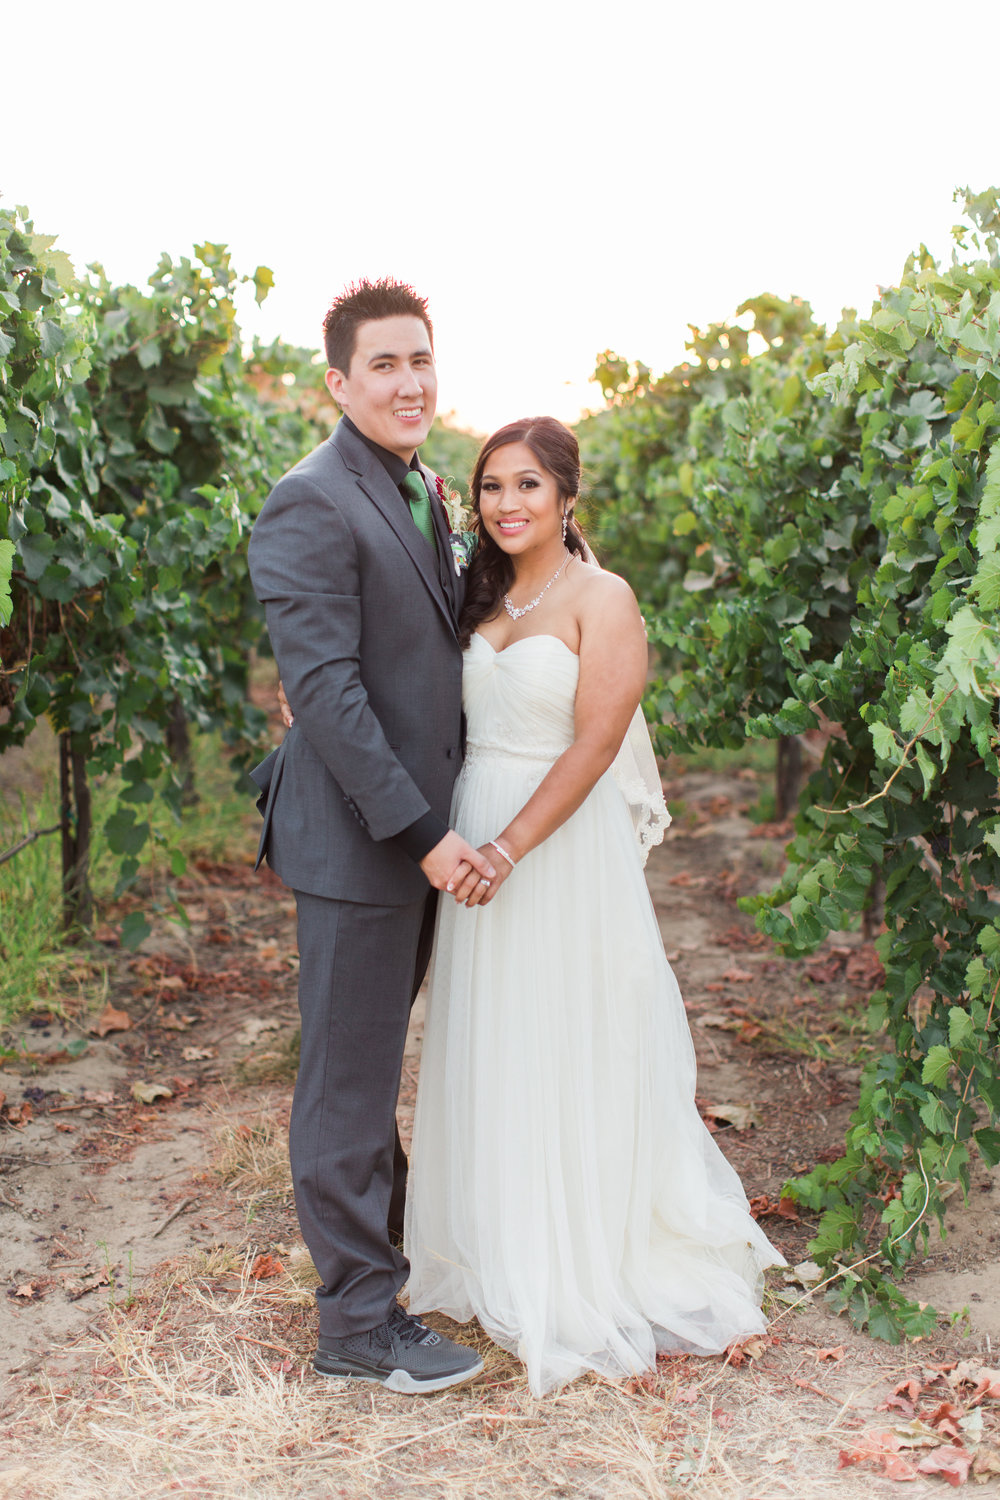 Mettler-family-vineyards-wedding-lodi-california-7657.jpg